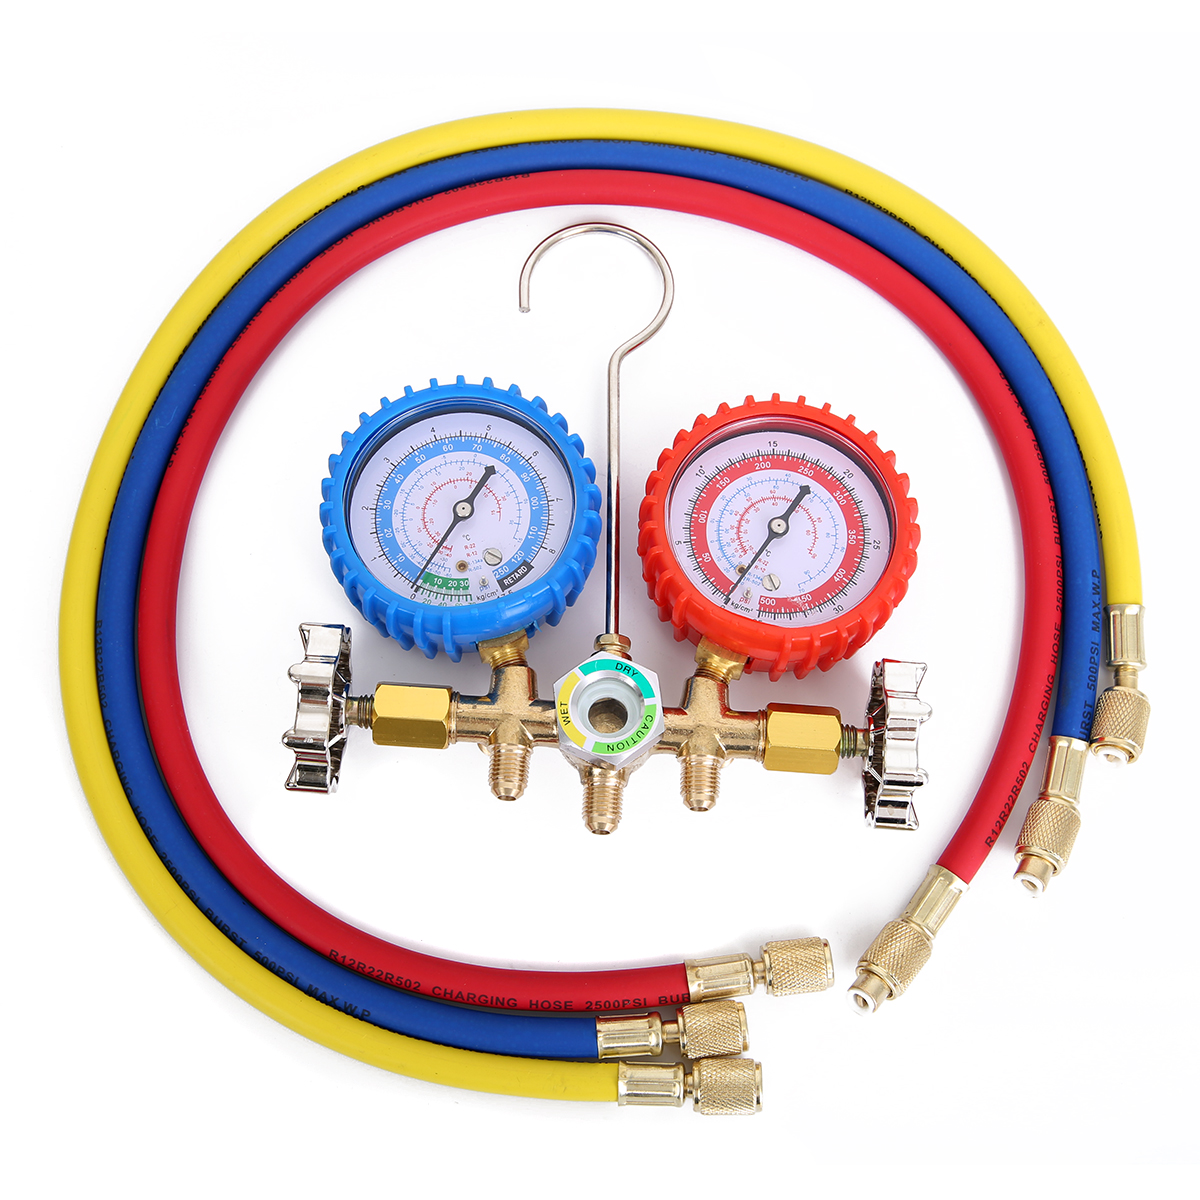 1/2PT Aluminum Alloy Manifold Gauge with Cable Set For R134A R12 R22 R404z Air Condition Refrigeration